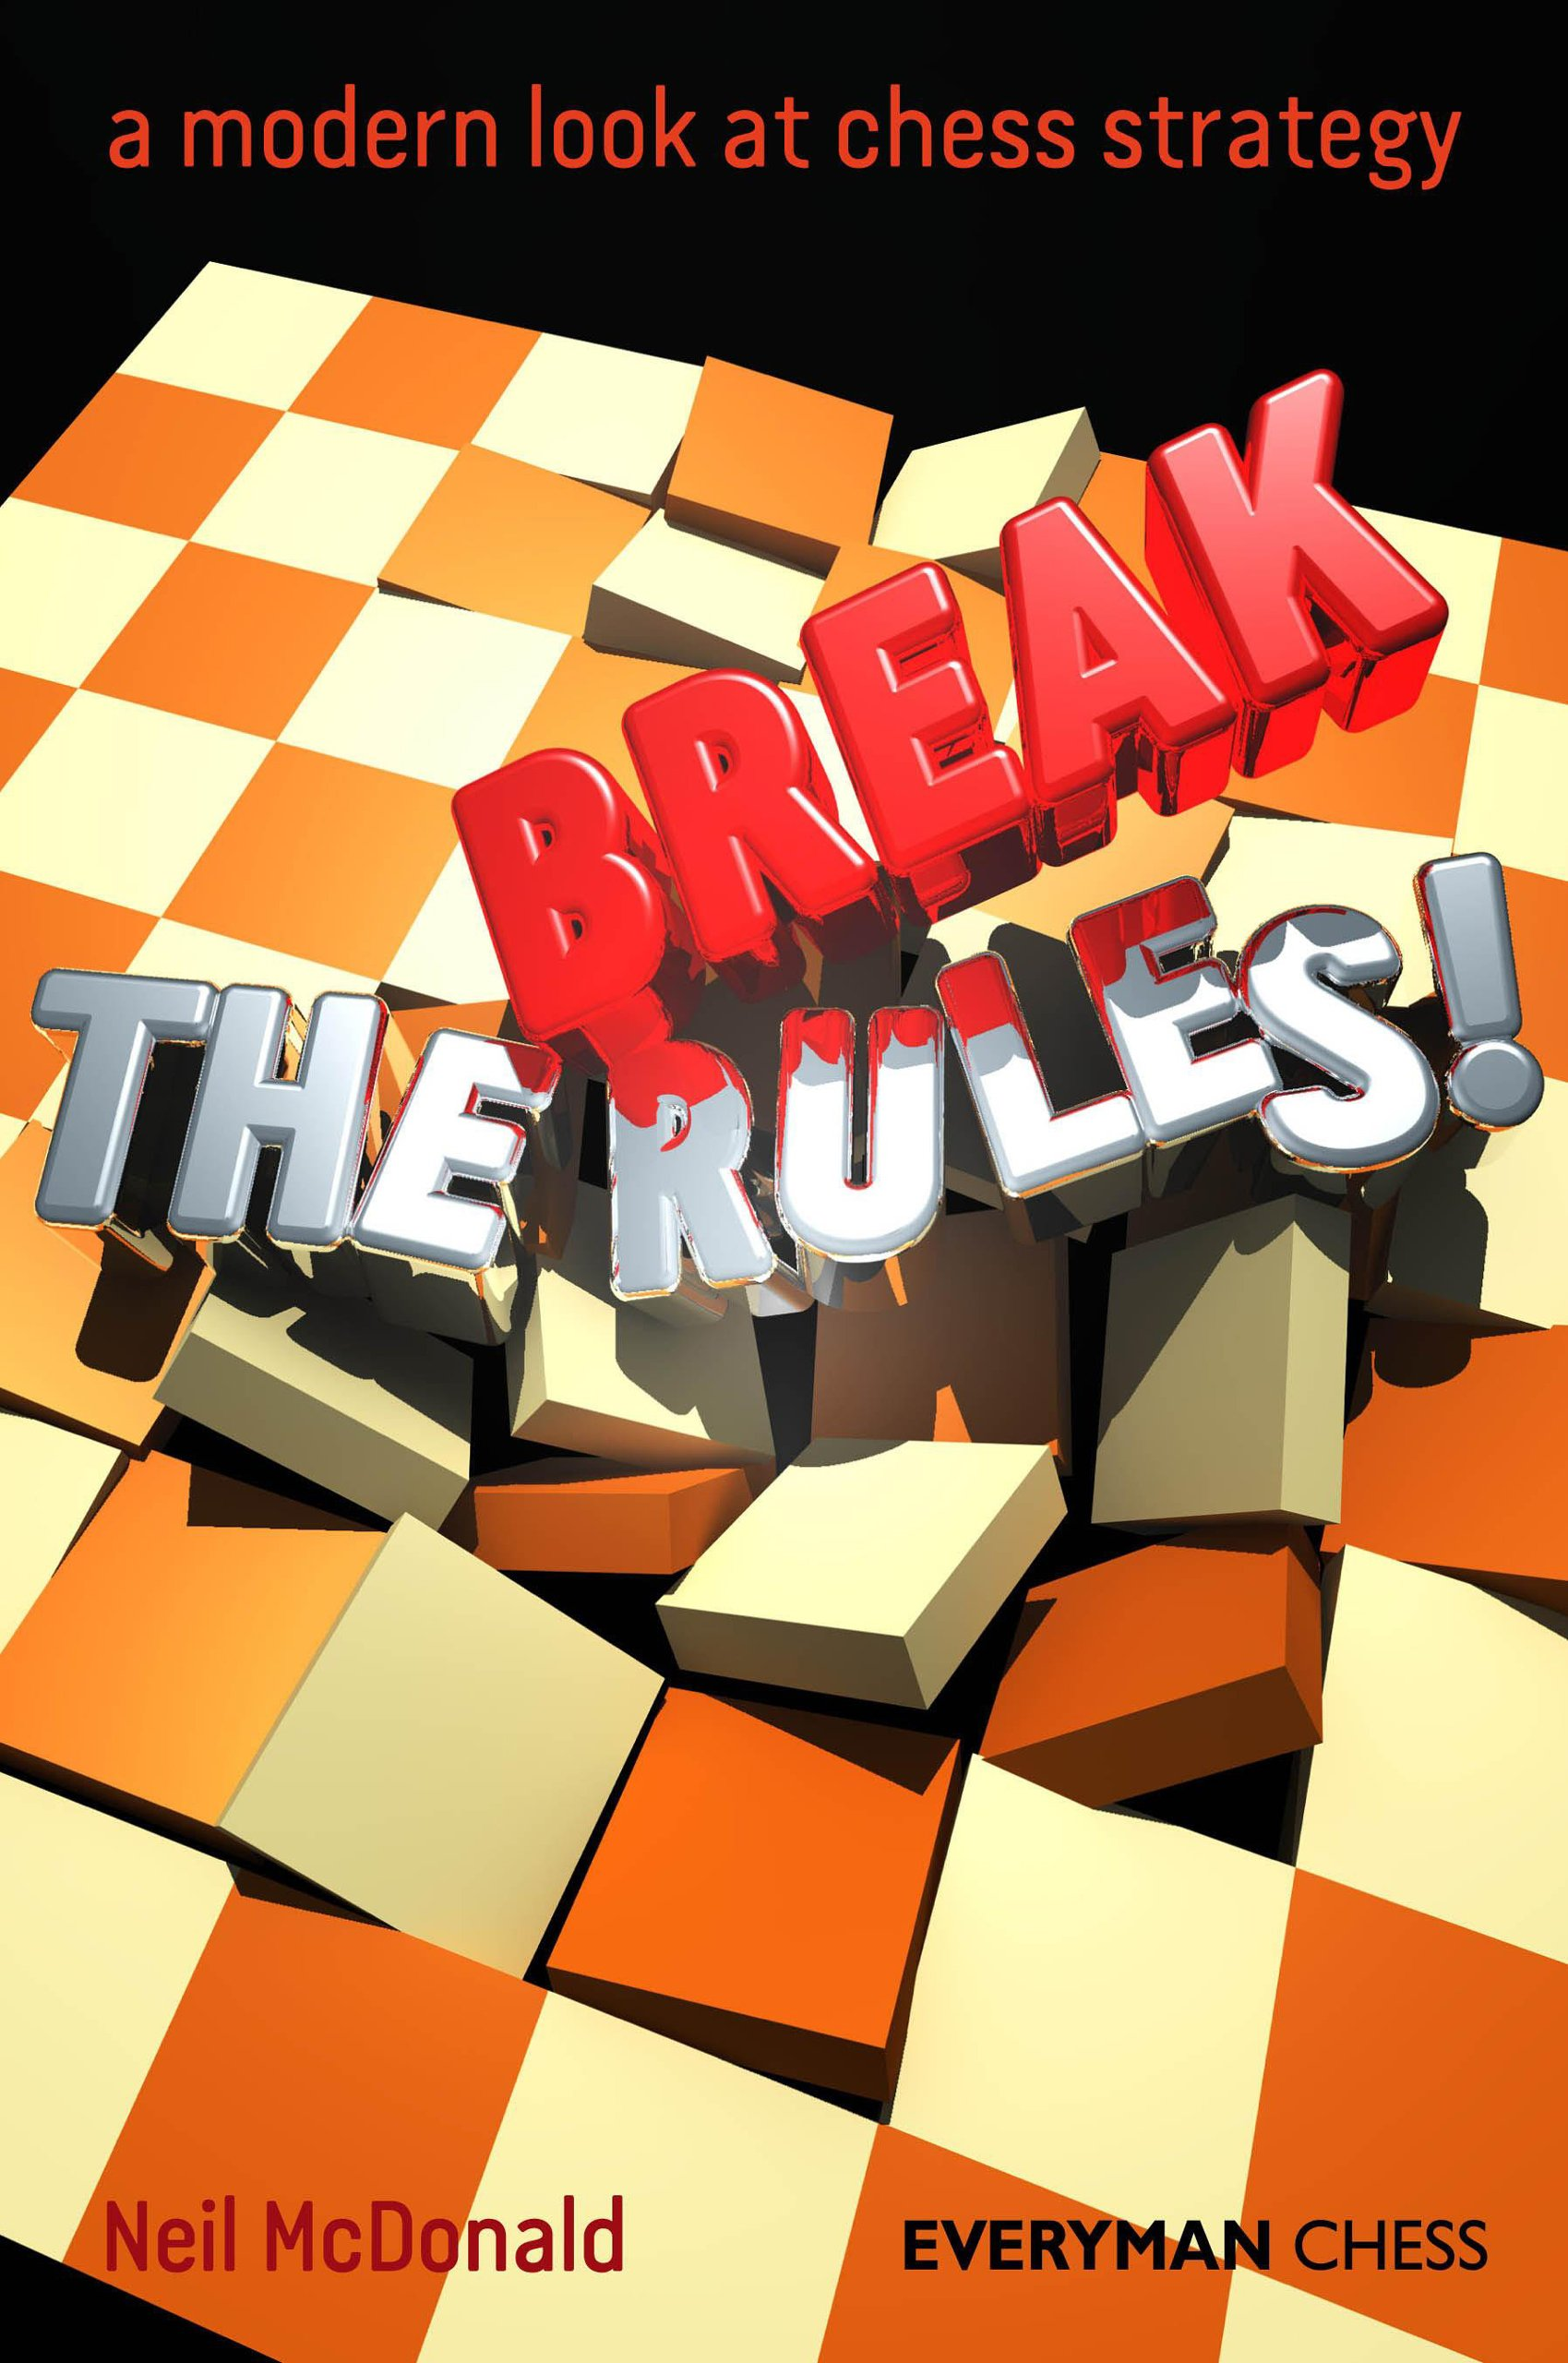 Break the rules a modern look at chess strategy everyman chess a modern look at chess strategy everyman chess neil mcdonald 9781857446739 amazon books fandeluxe Image collections